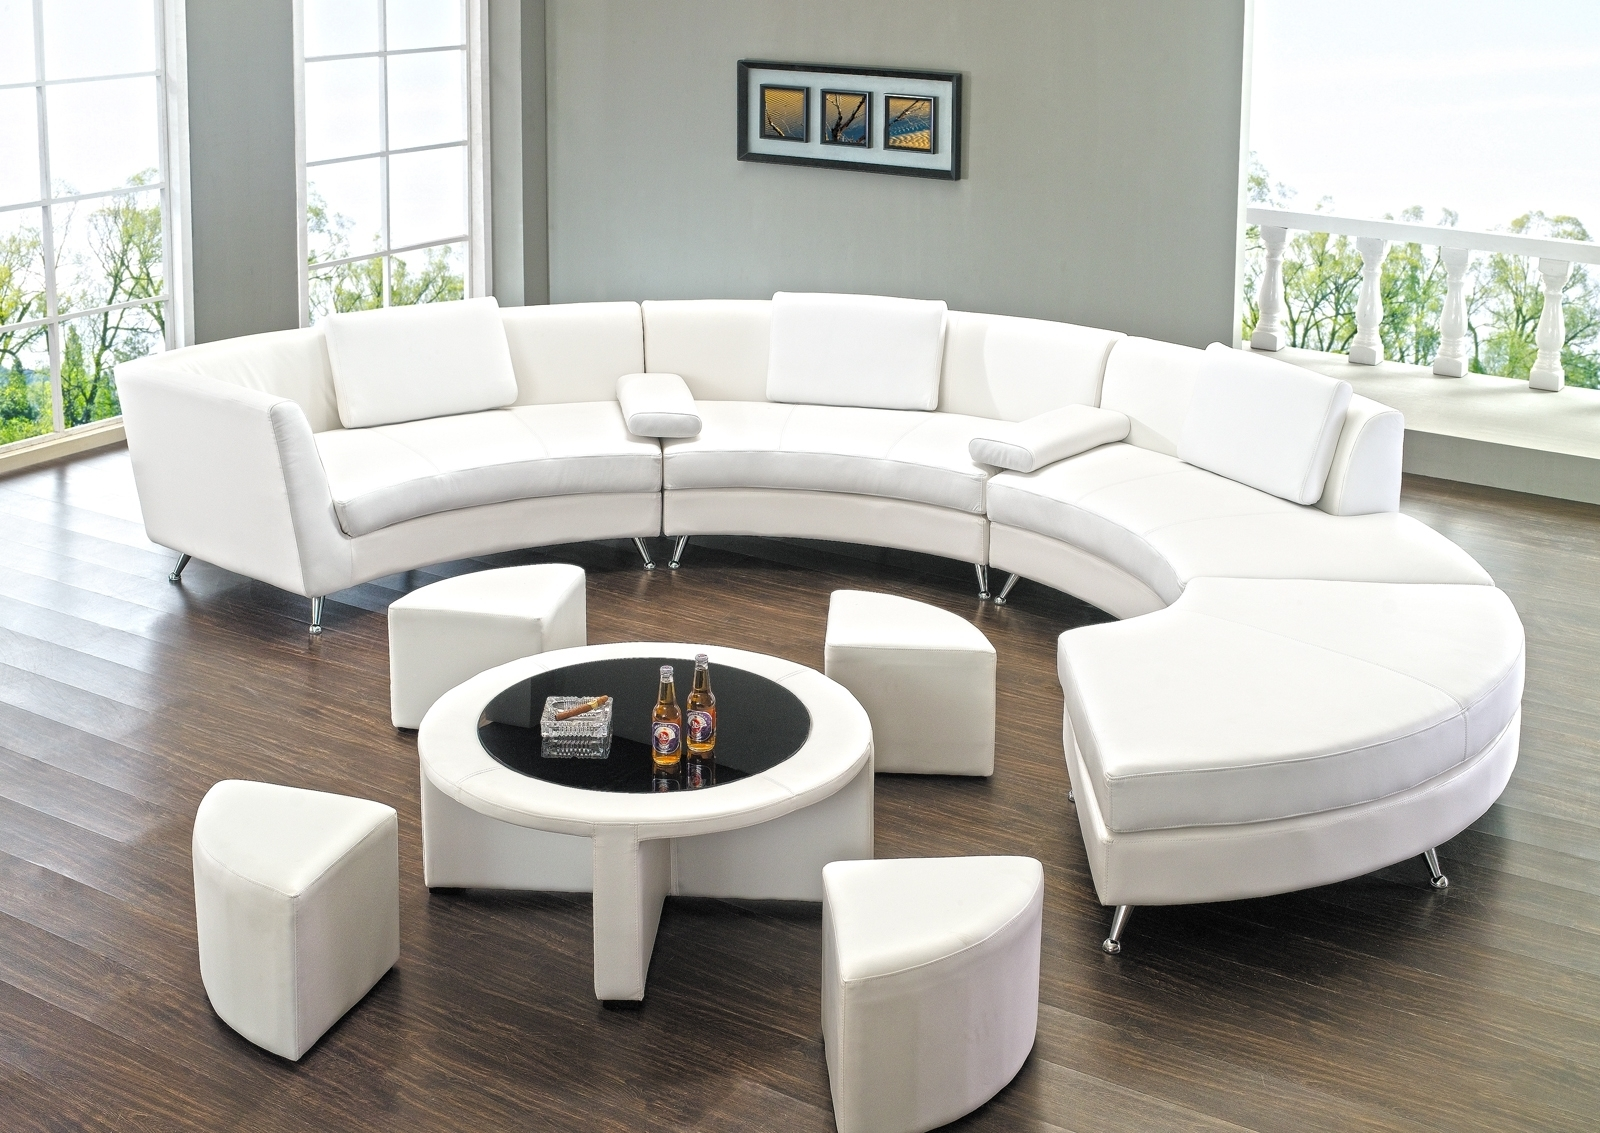 Round Sectional Sofa Has One Of The Best Kind Of Other Is Sectionals Throughout Round Sectional Sofas (Image 8 of 10)